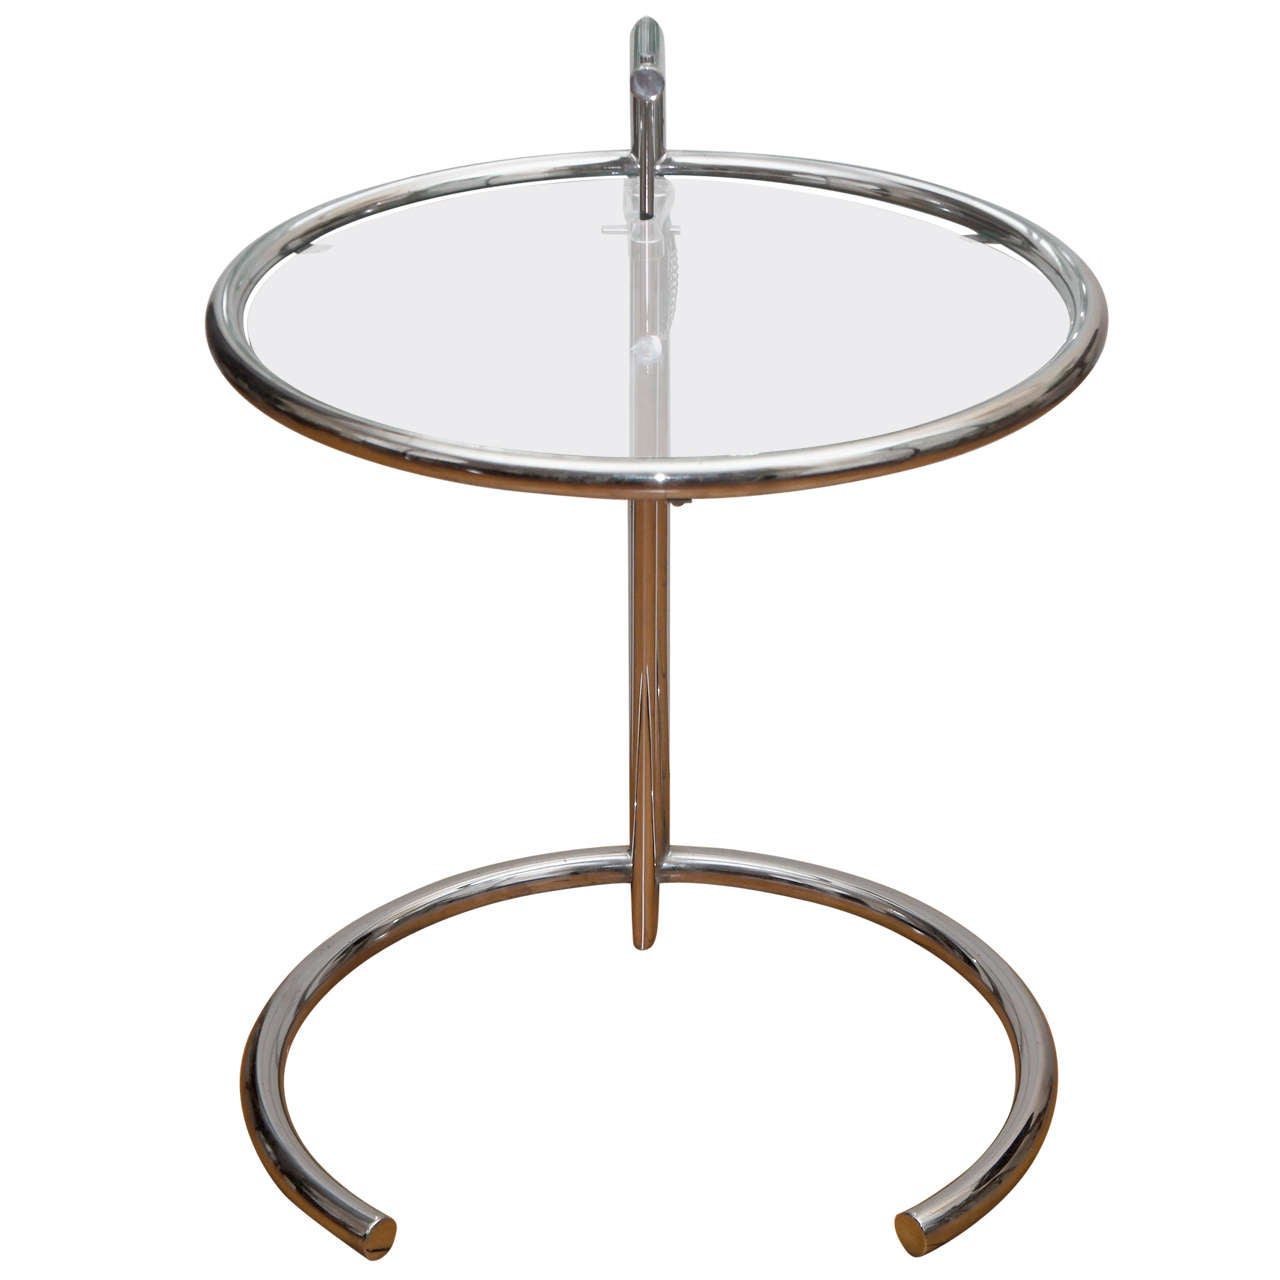 Eileen Gray Table Eileen Gray Chrome And Glass Round Table